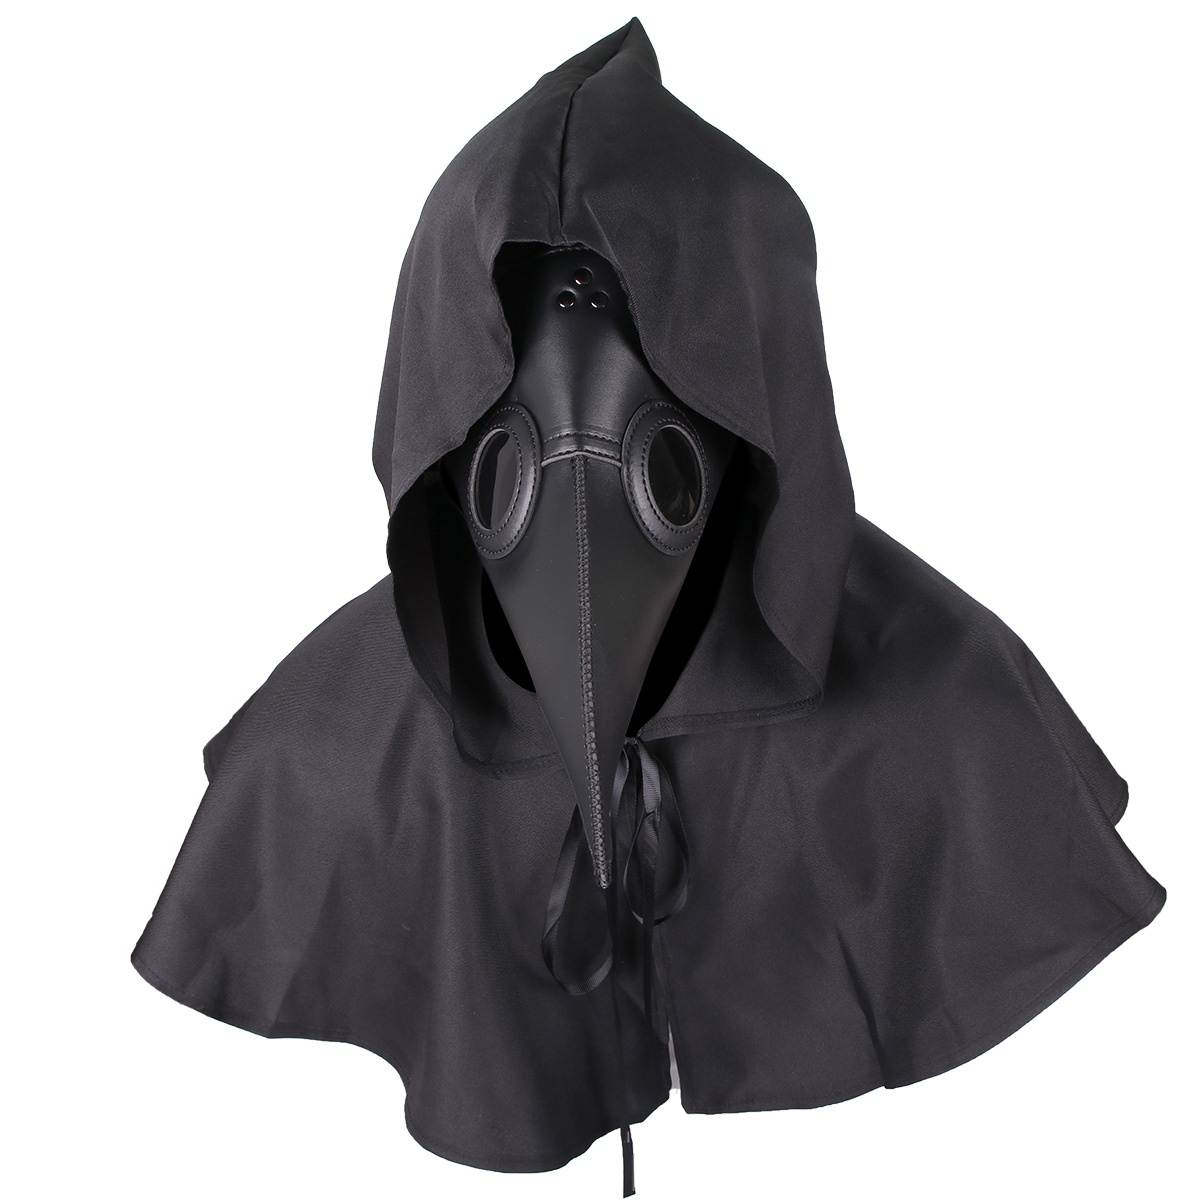 Plague Doctor Bird Leather Mask + Cloak Long Nose Beak Cosplay Halloween Costume Steampunk Props for Adults